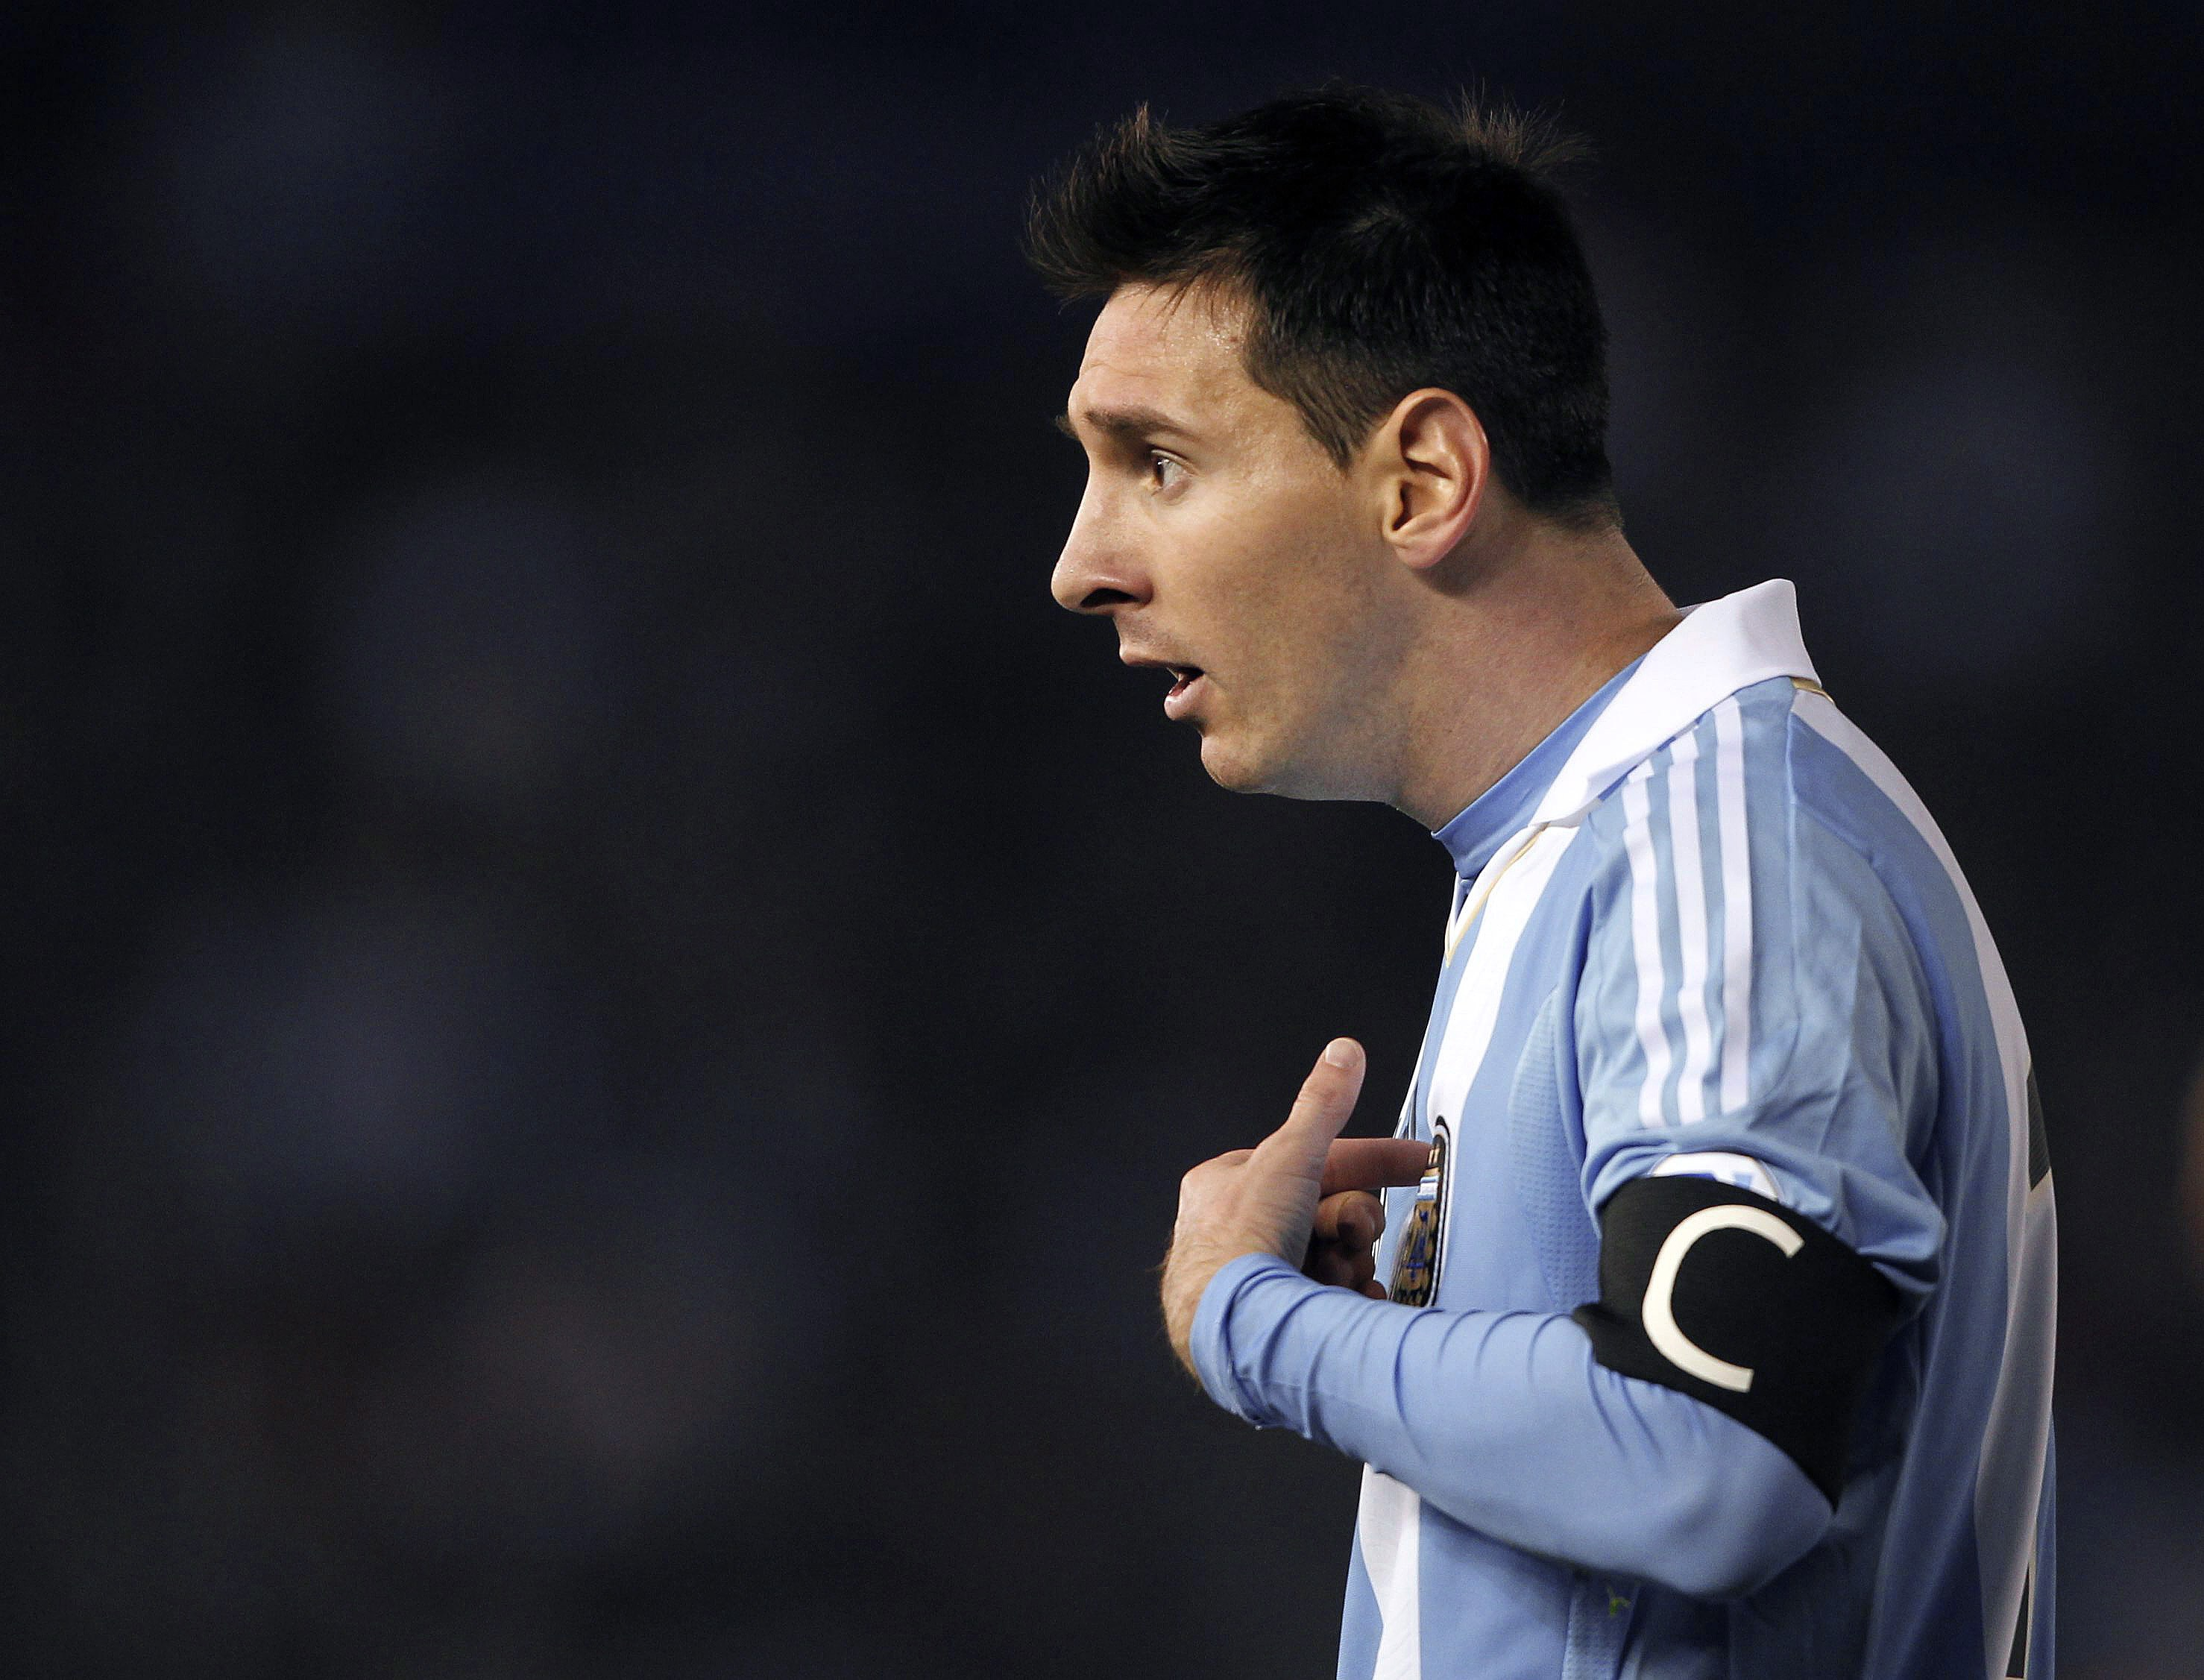 Messi Of Argentina Argues During A 2014 World Cup Qualifying Soccer Match Against Colombia In Buenos